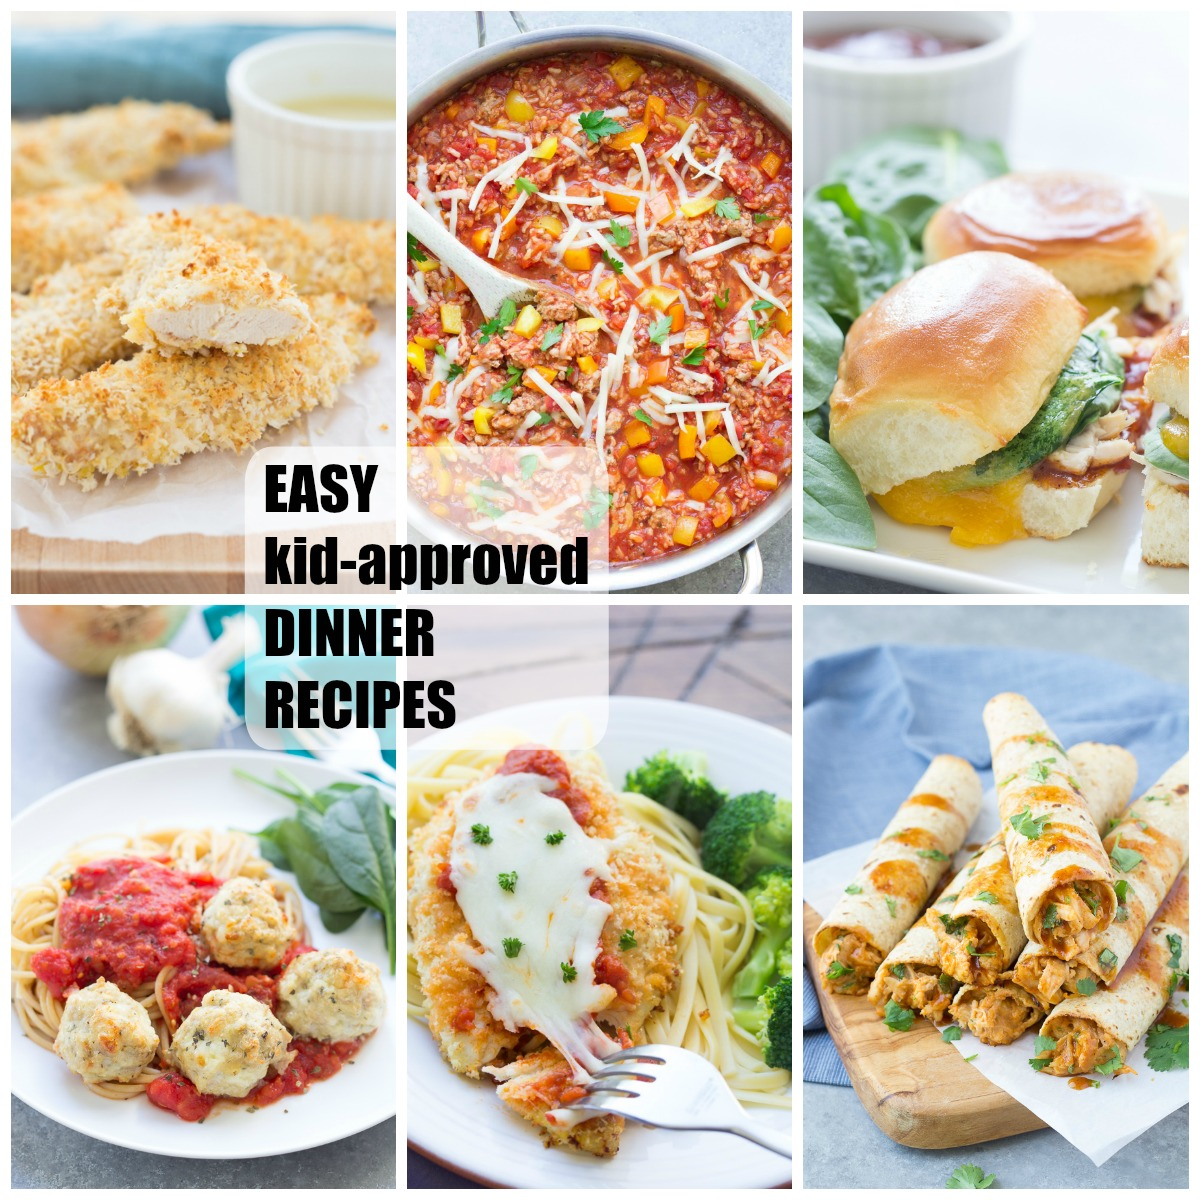 Easy Kid-Approved Dinner Recipes